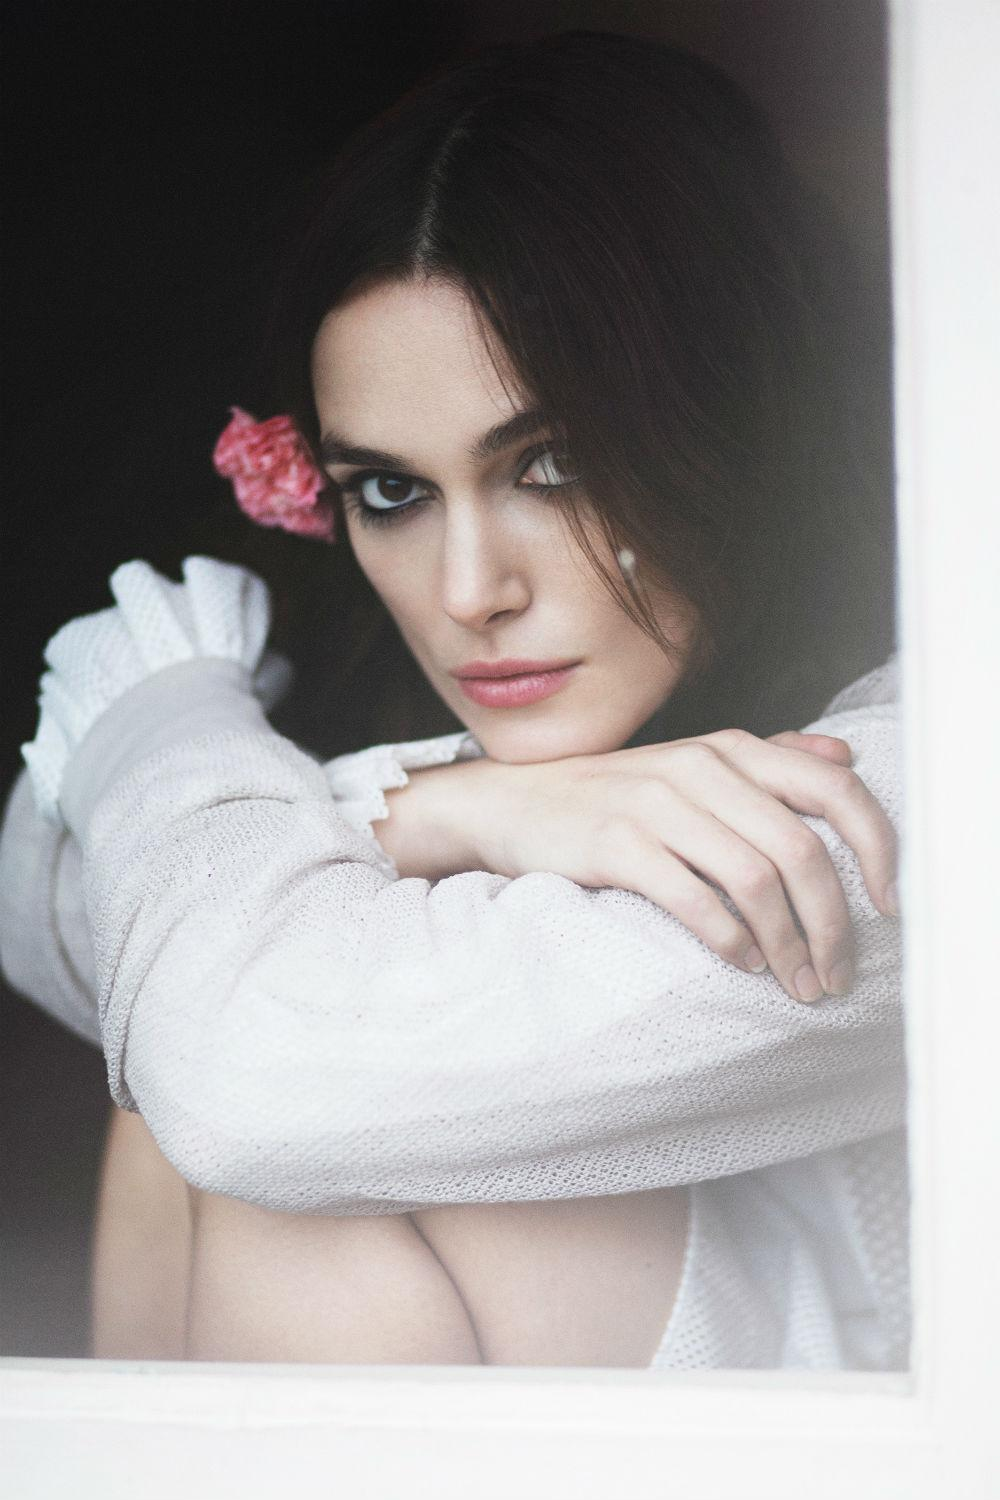 keira-knightley-by-emily-hope-for-rika-spring-L-izVkJp.jpeg